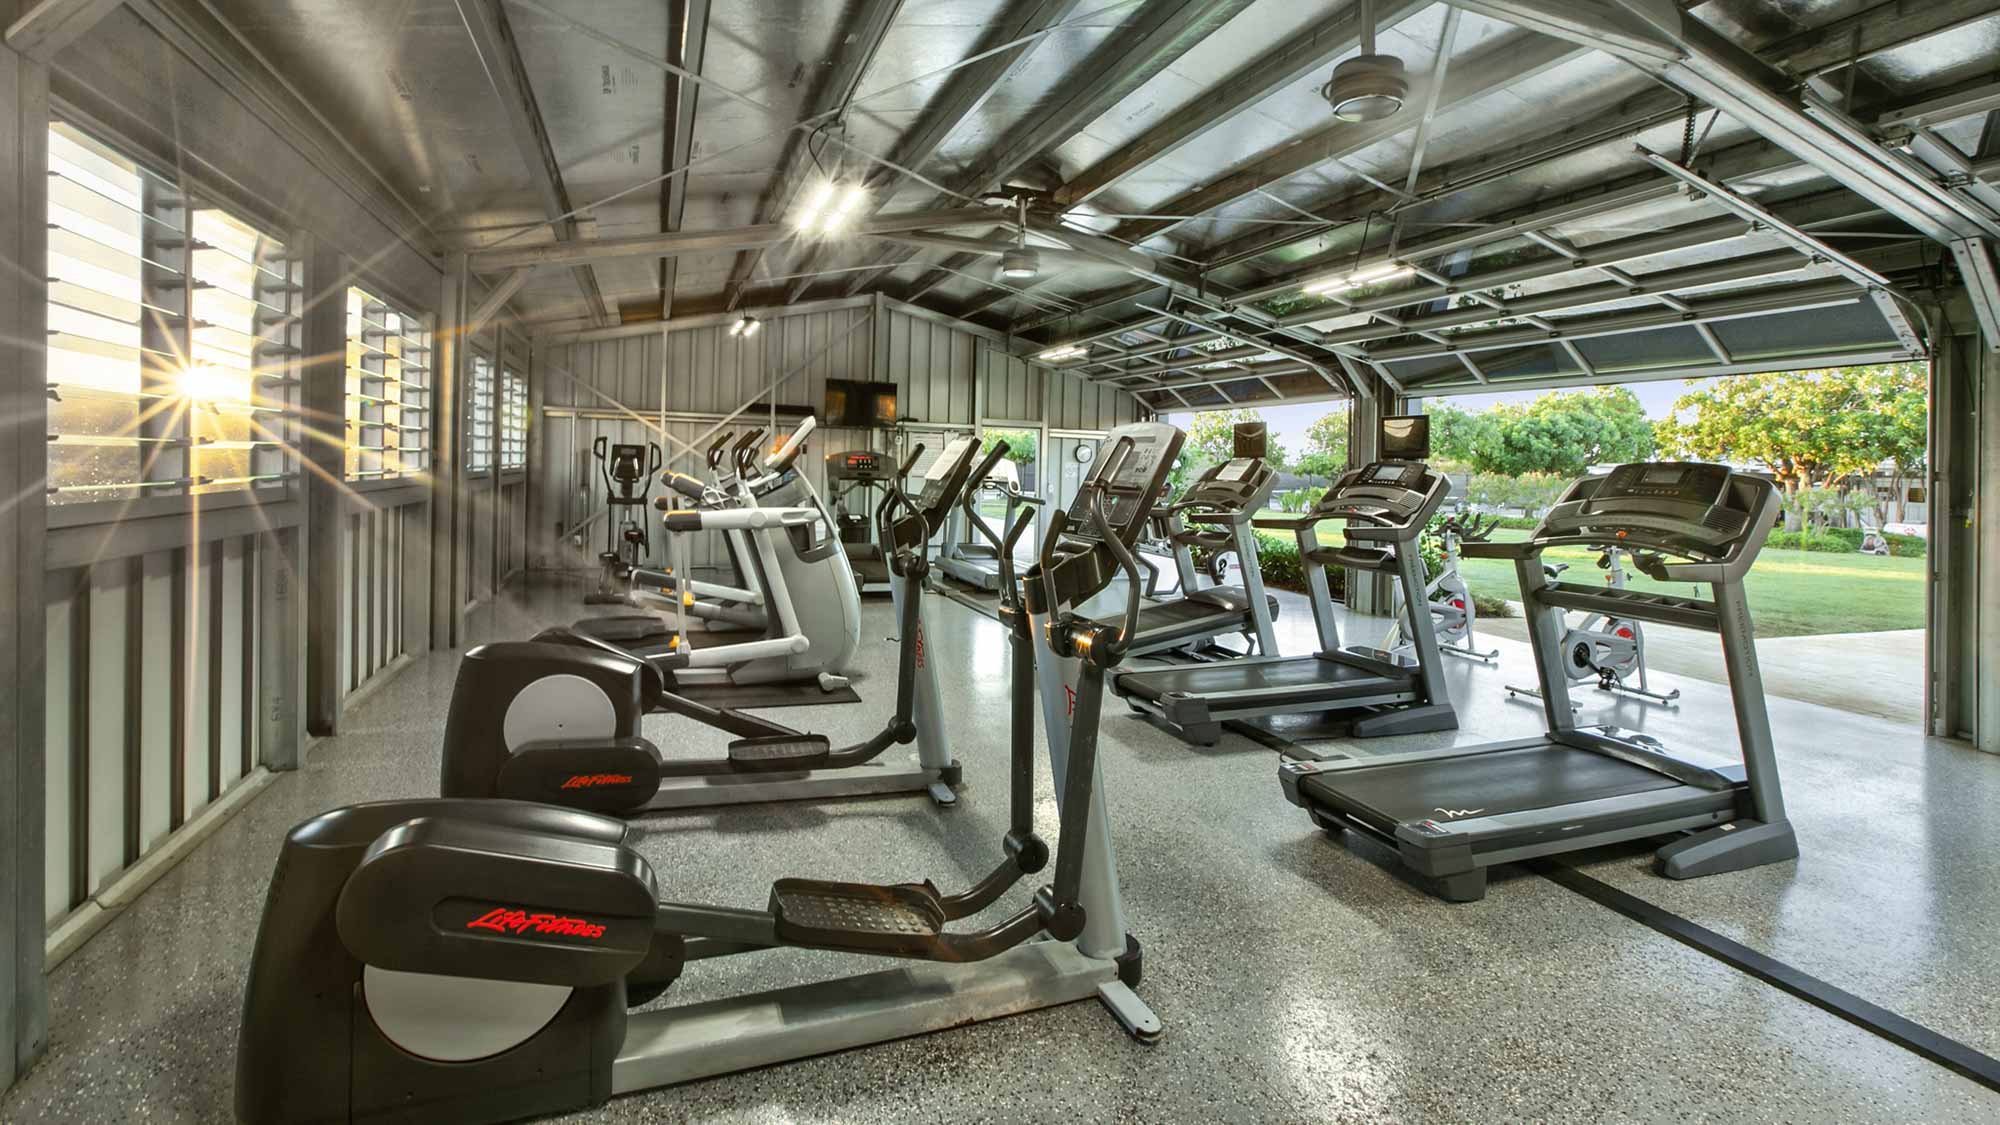 Poipu Beach Athletic Club Cardio Room - Parrish Kauai - Parrish Kauai